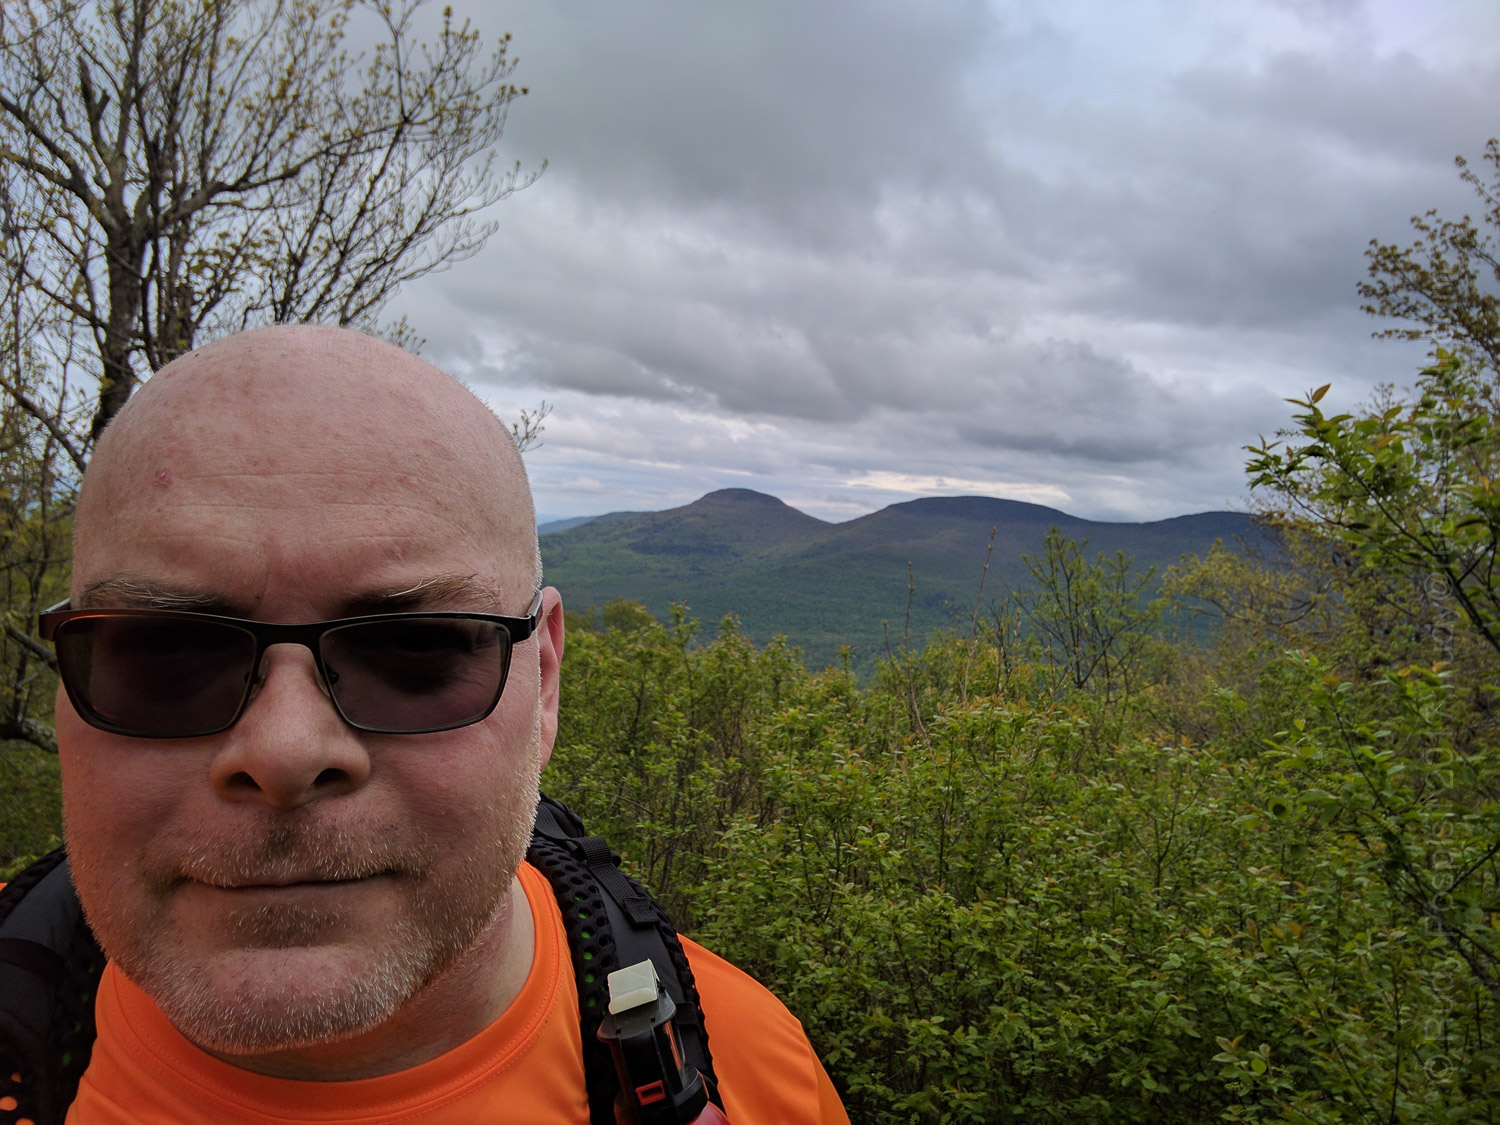 Your's truly, near the summit of Windham High Peak in the Catskill Mountains. That's Blackhead Range in the background.